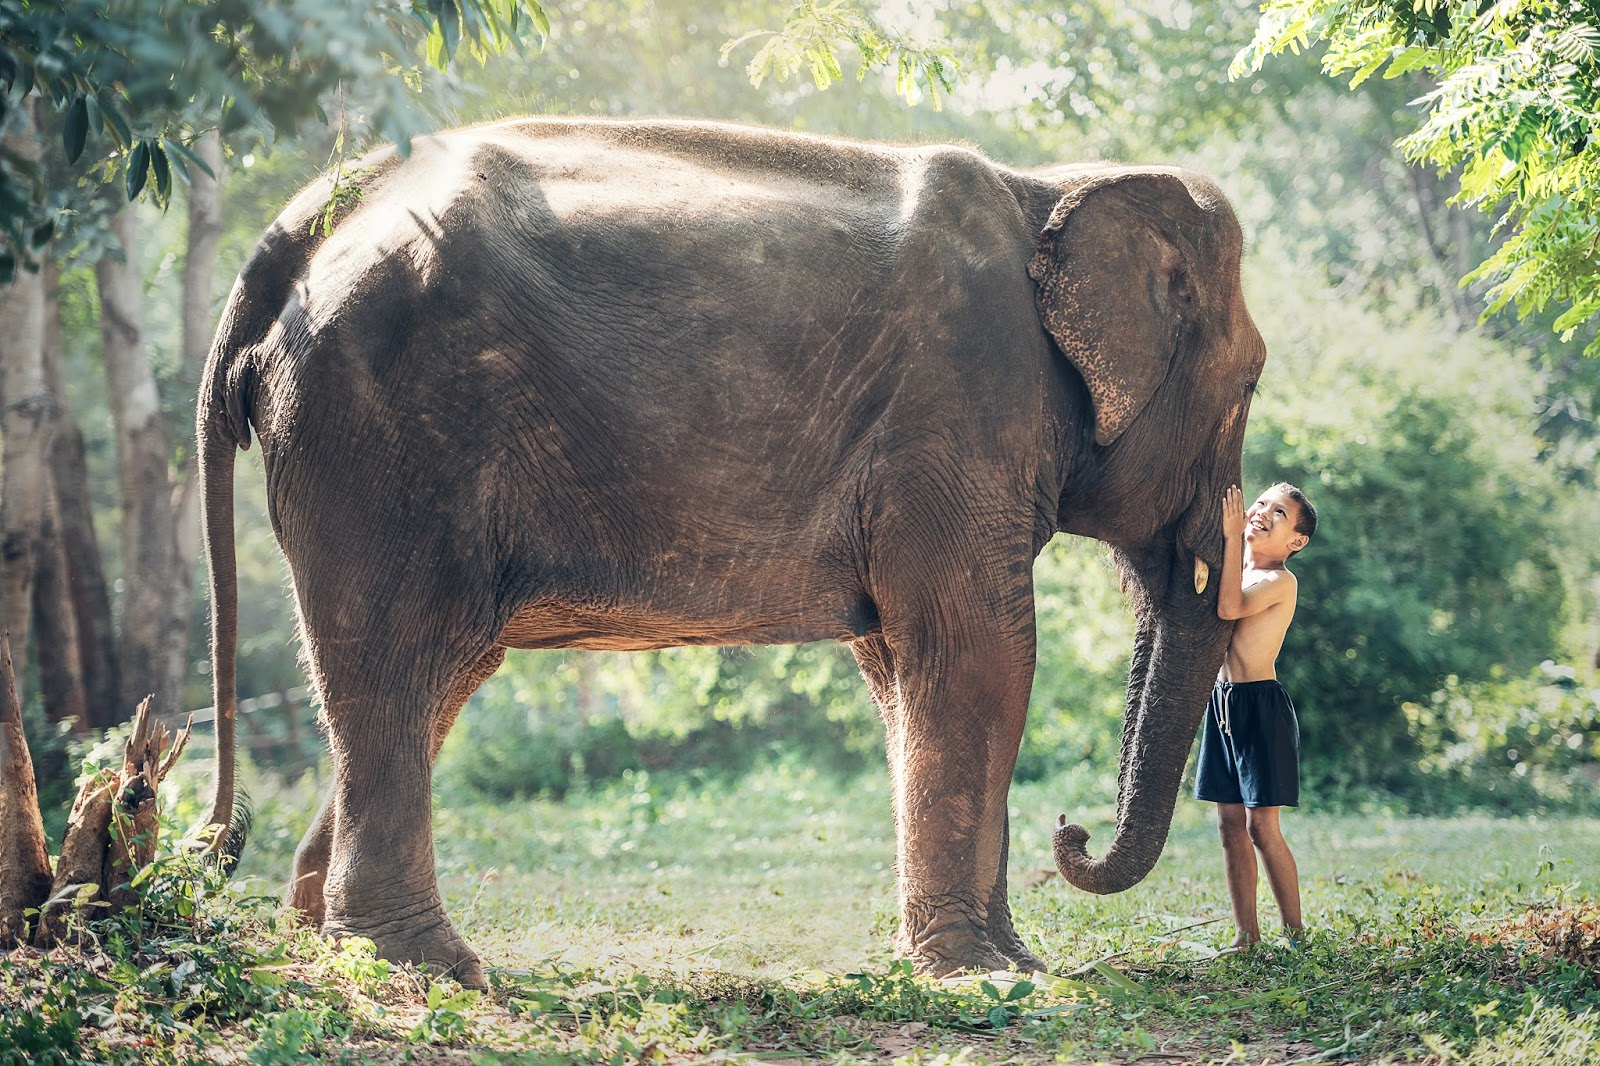 A boy with his elephant friend.